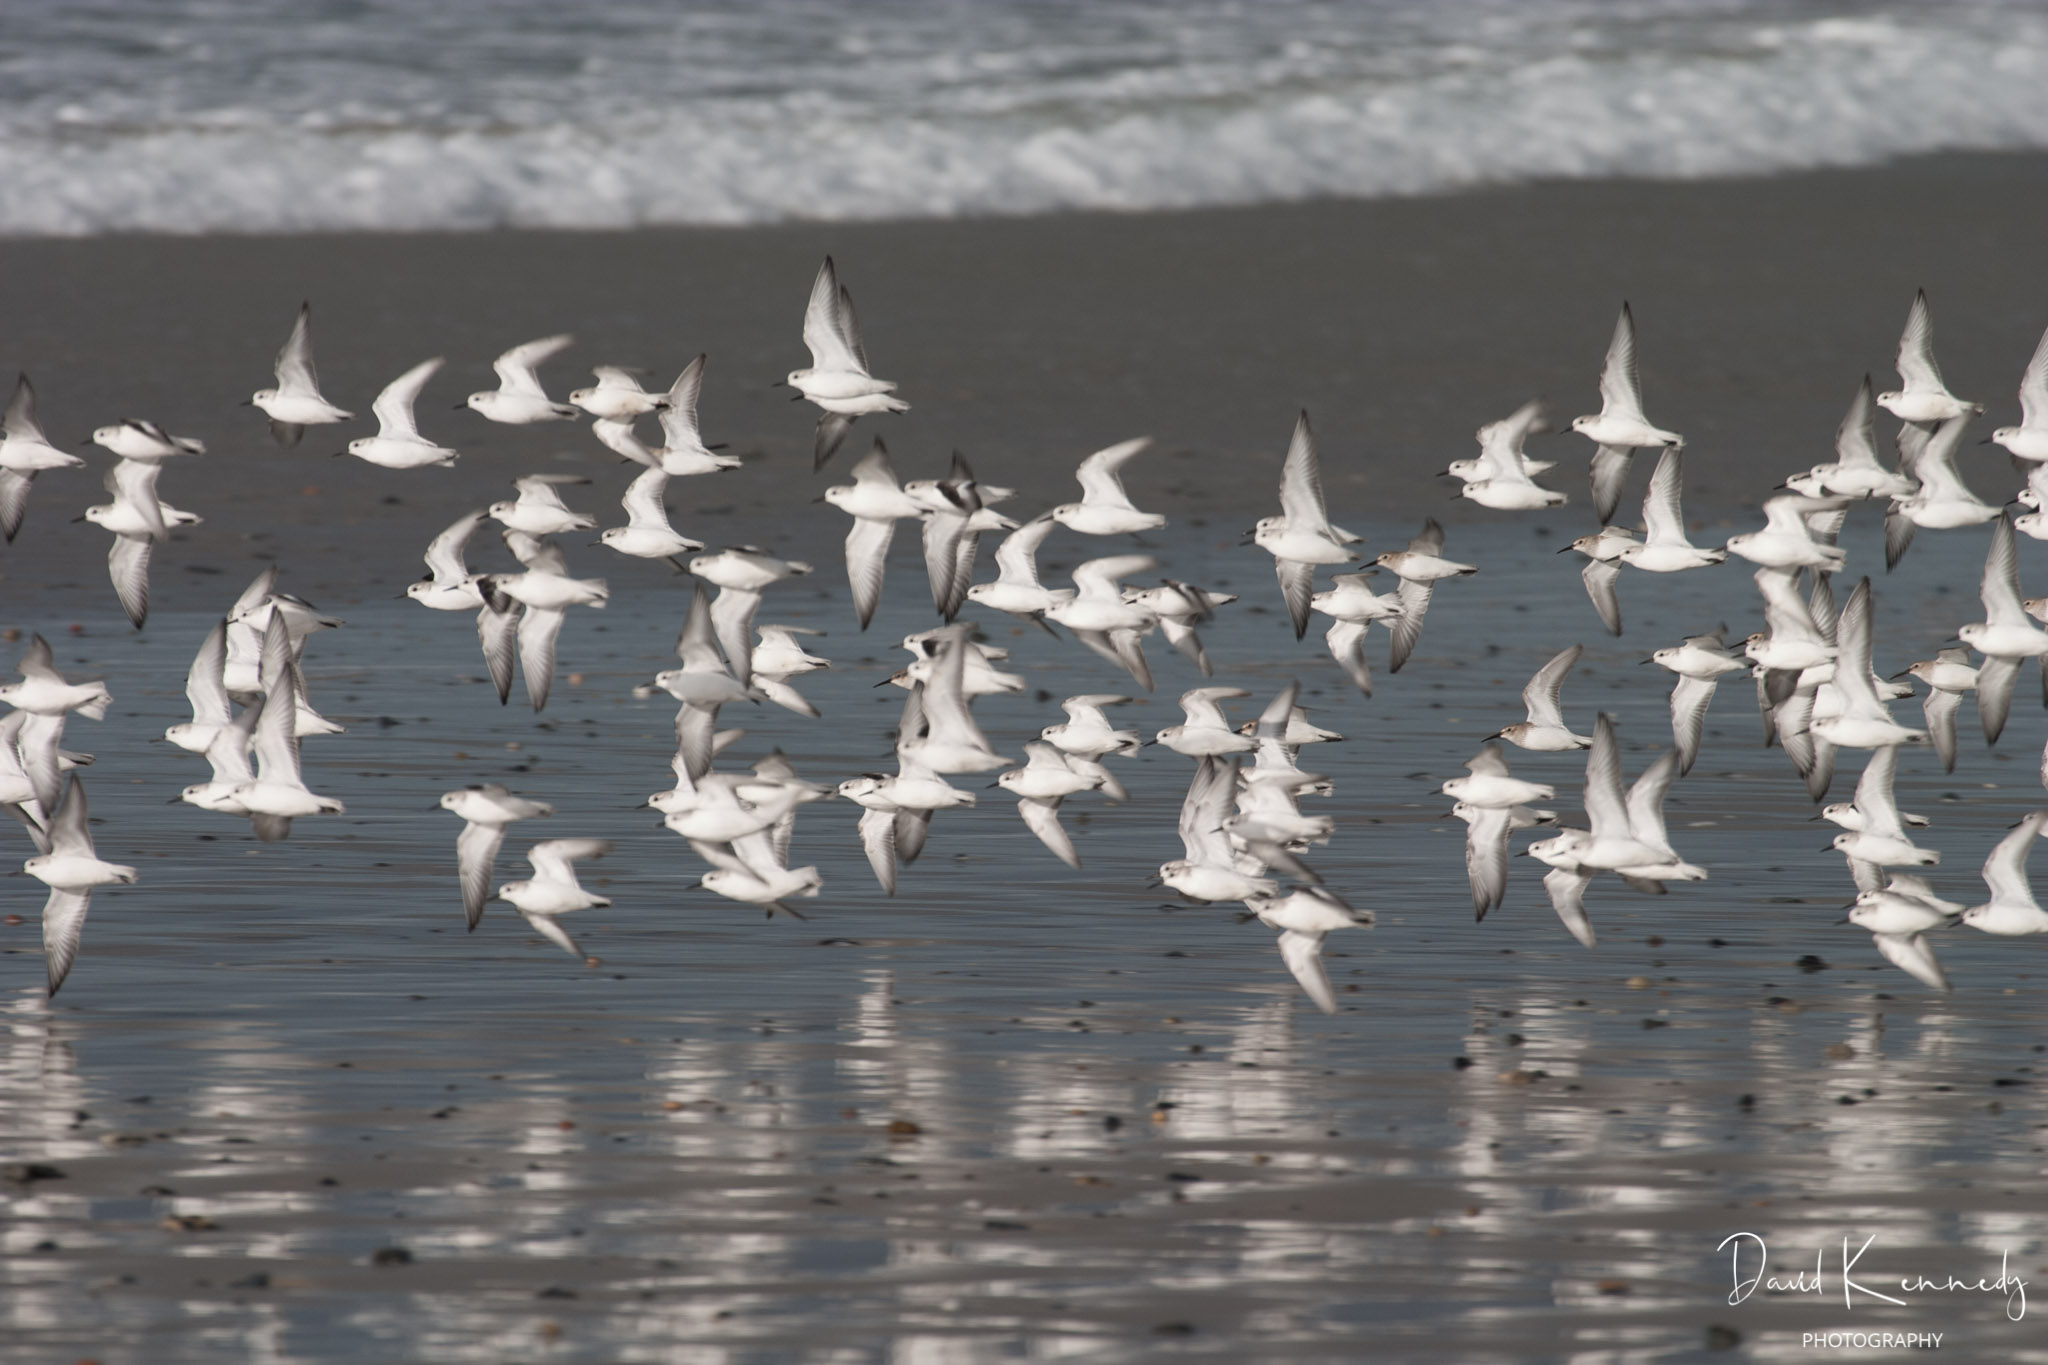 A flock of small gulls flying low over wet sand